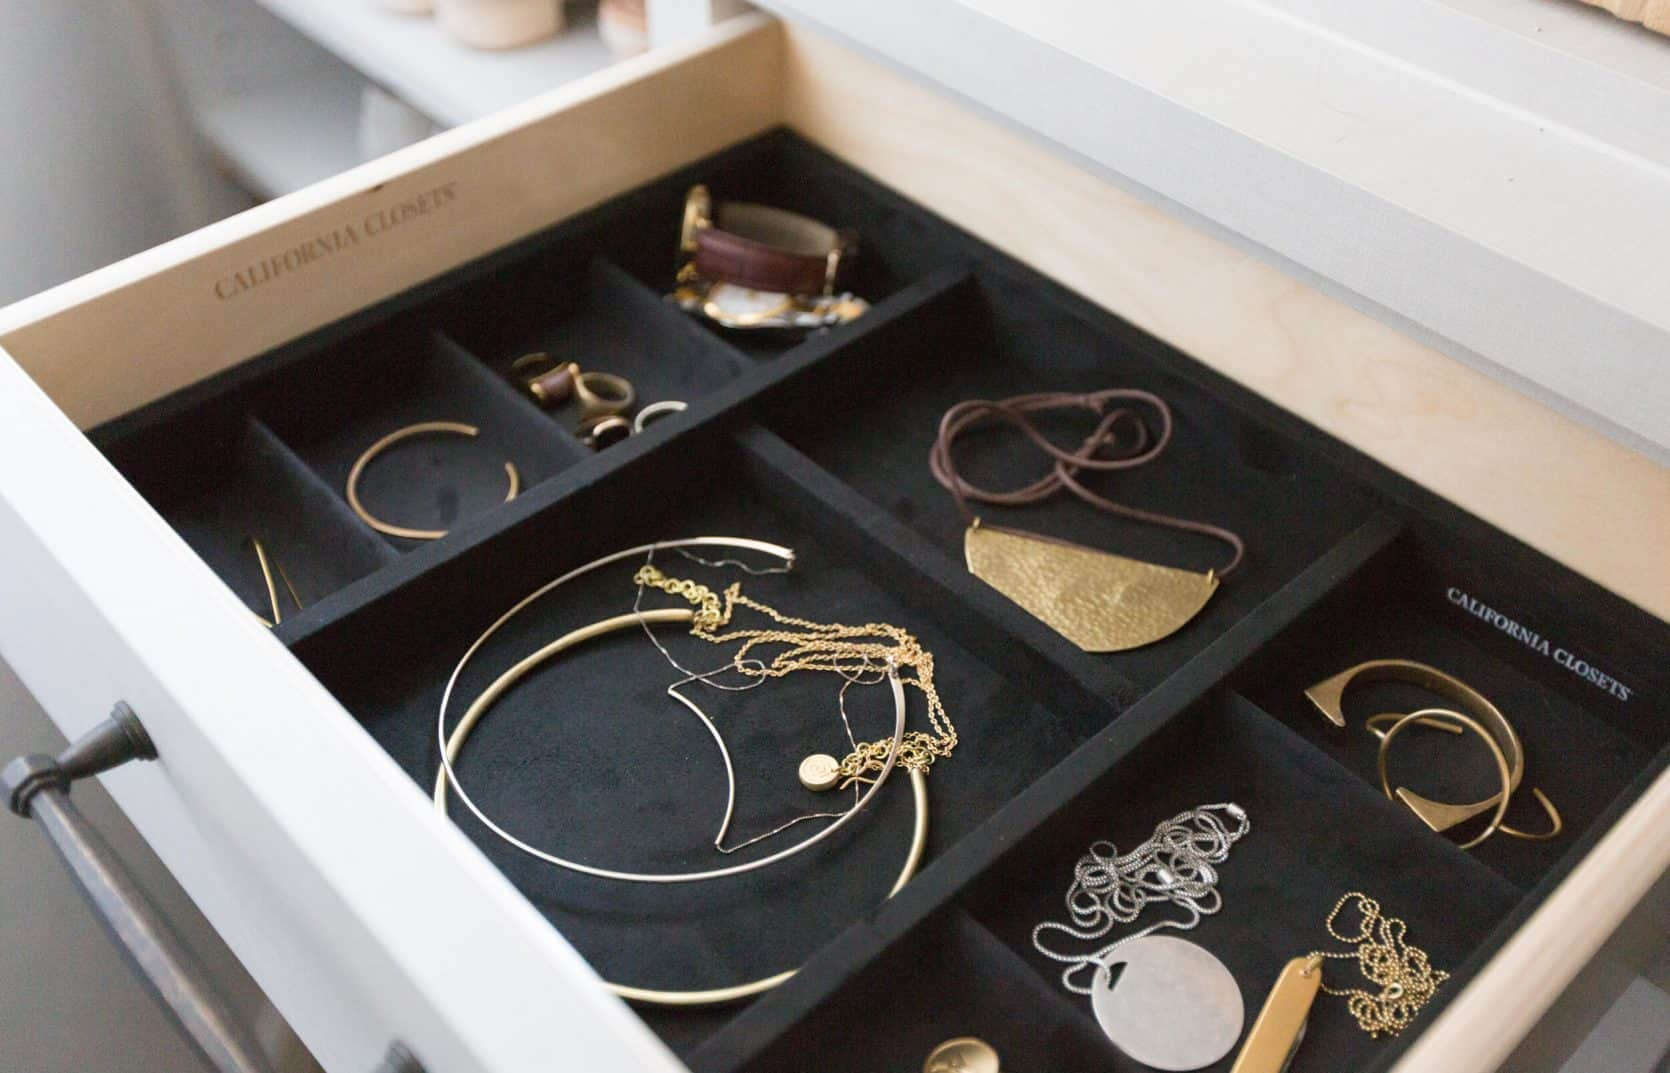 Mallory S Jewelry Storage Problem A New Found Solution Emily Henderson